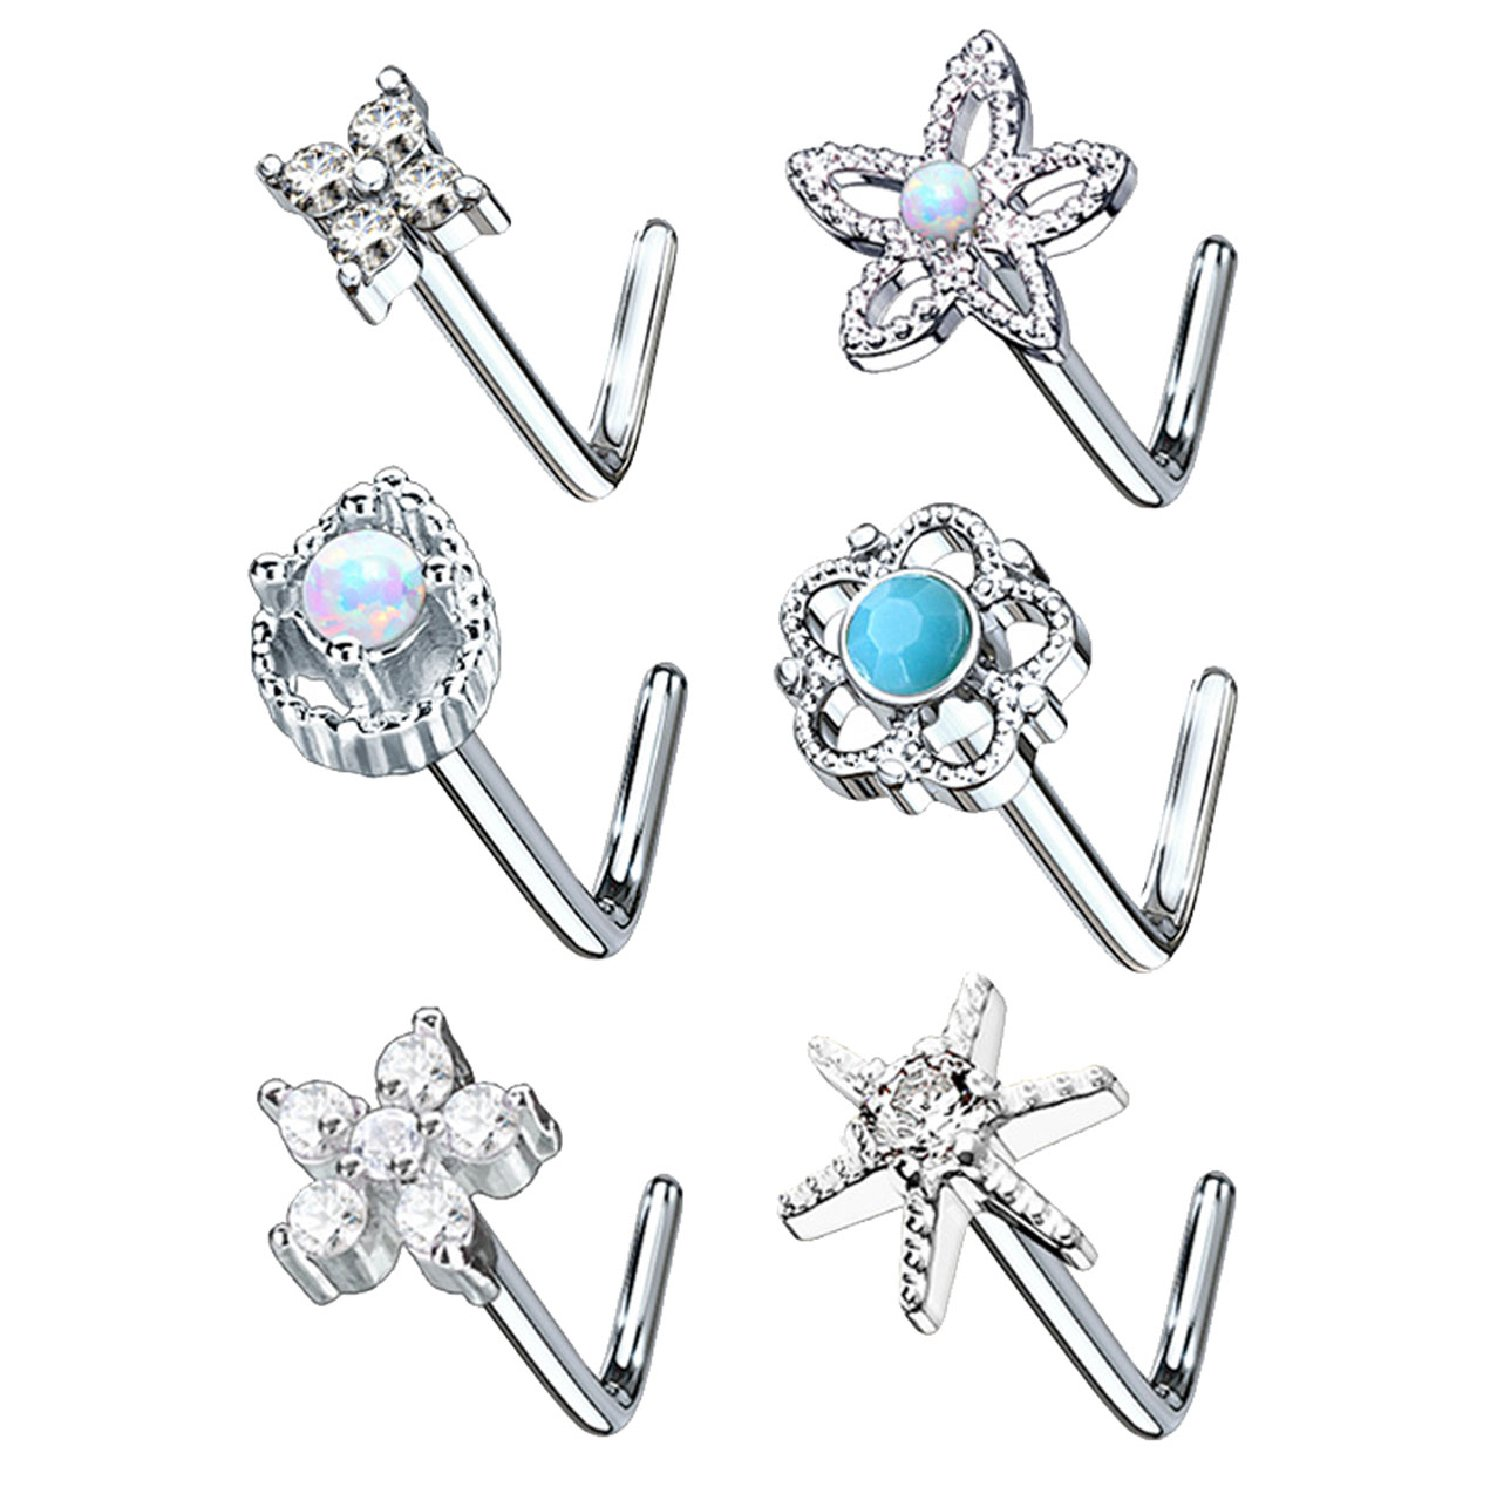 BodyJ4You 6PC Nose Rings 20G Pin Stud L-Shape Steel Star Flower CZ Nostril Women Girl Piercing Jewelry by BodyJ4You